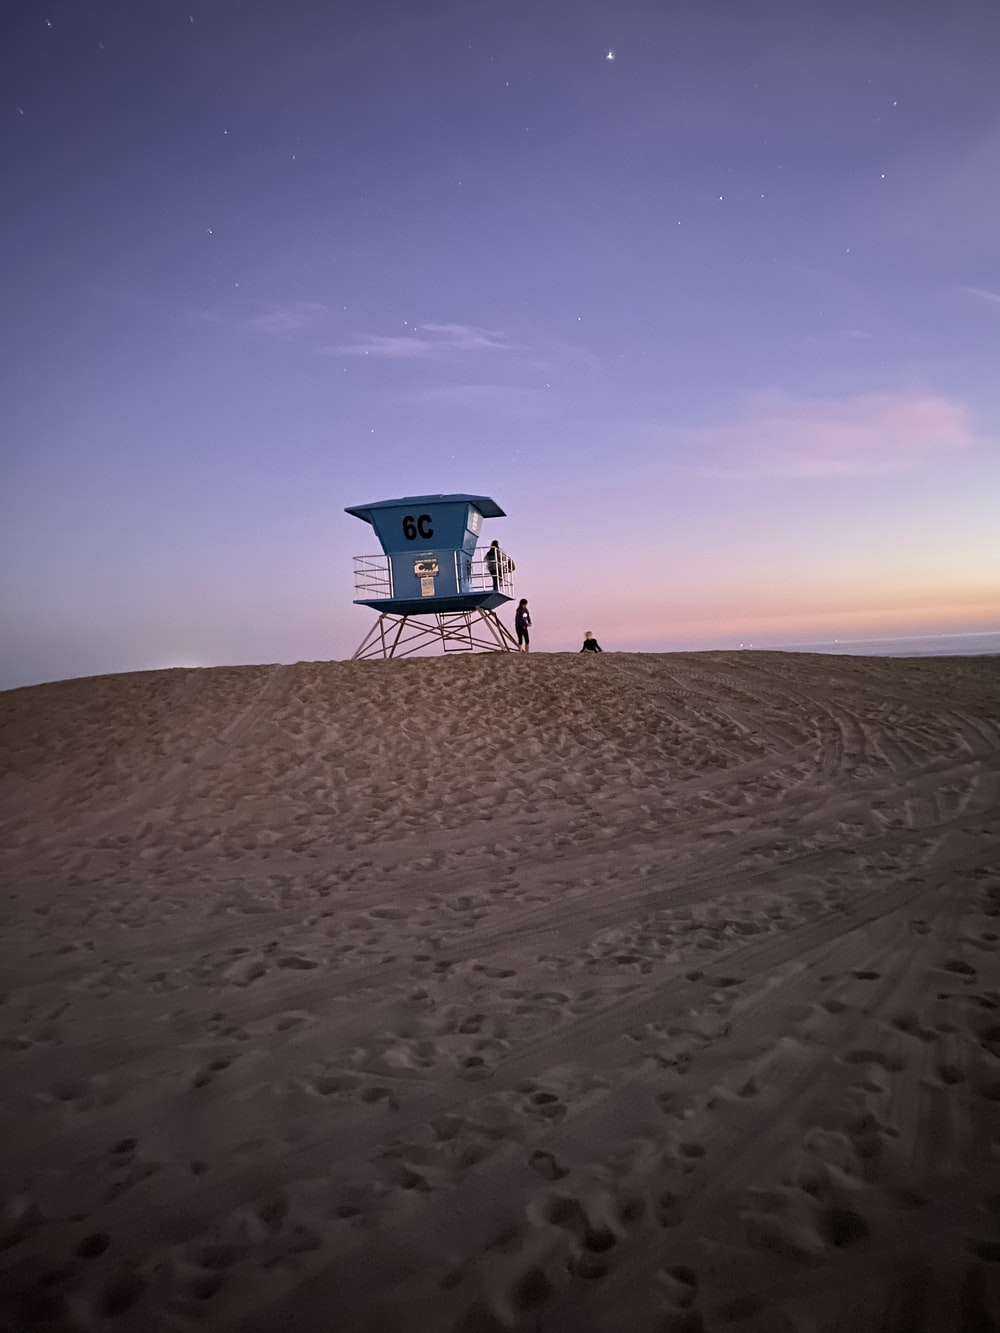 blue and white lifeguard house on sand